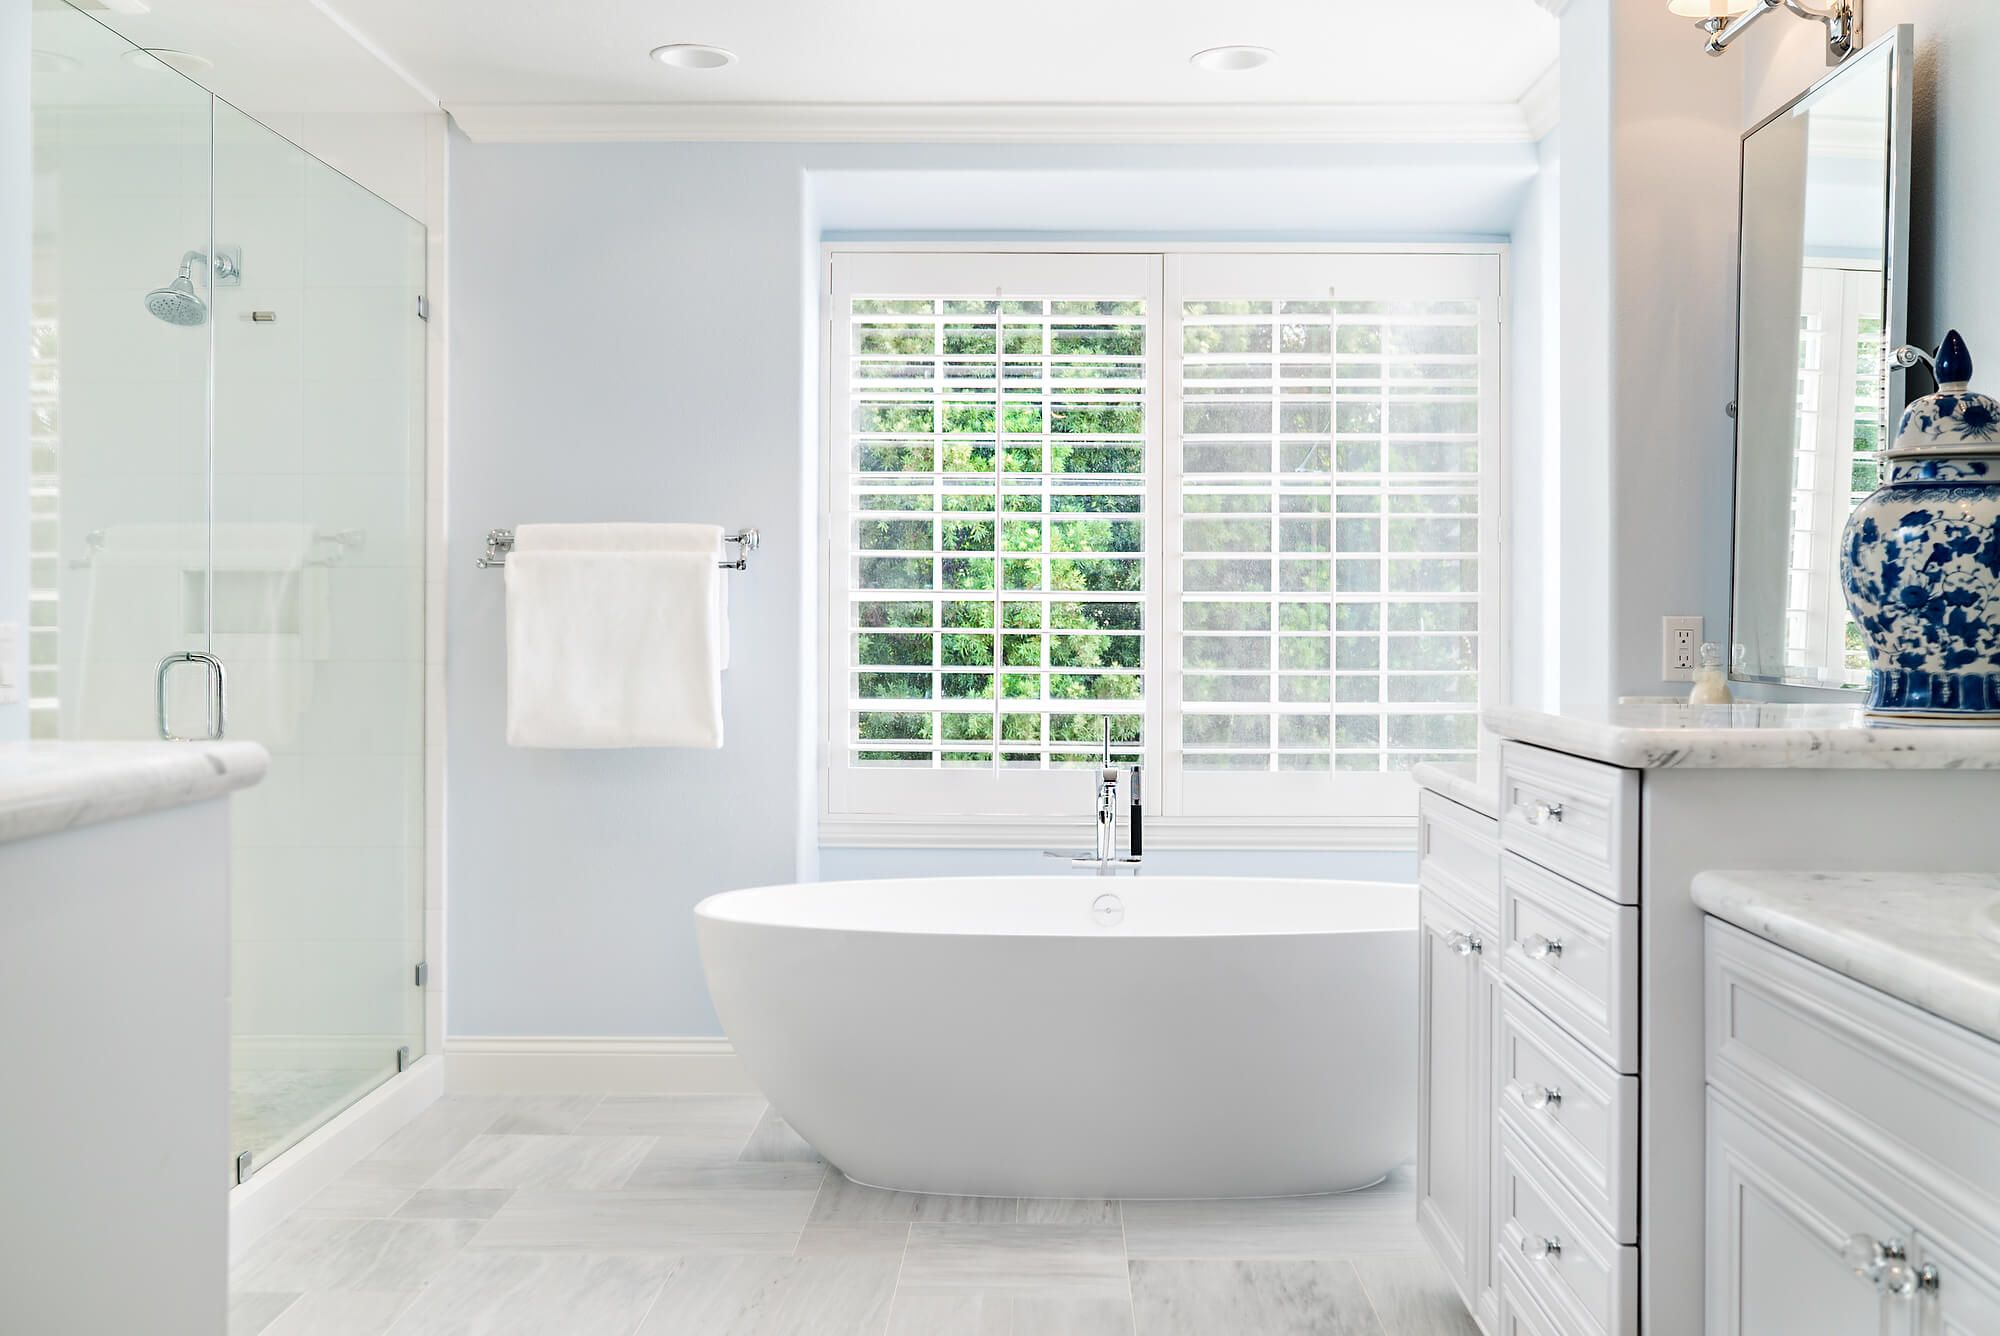 Bathroom Renovations Cost How Much Does A Master Remodel 2000 215 1336 Bathroom Remodel Cost Bathroom Renovation Cost Bathroom Cost